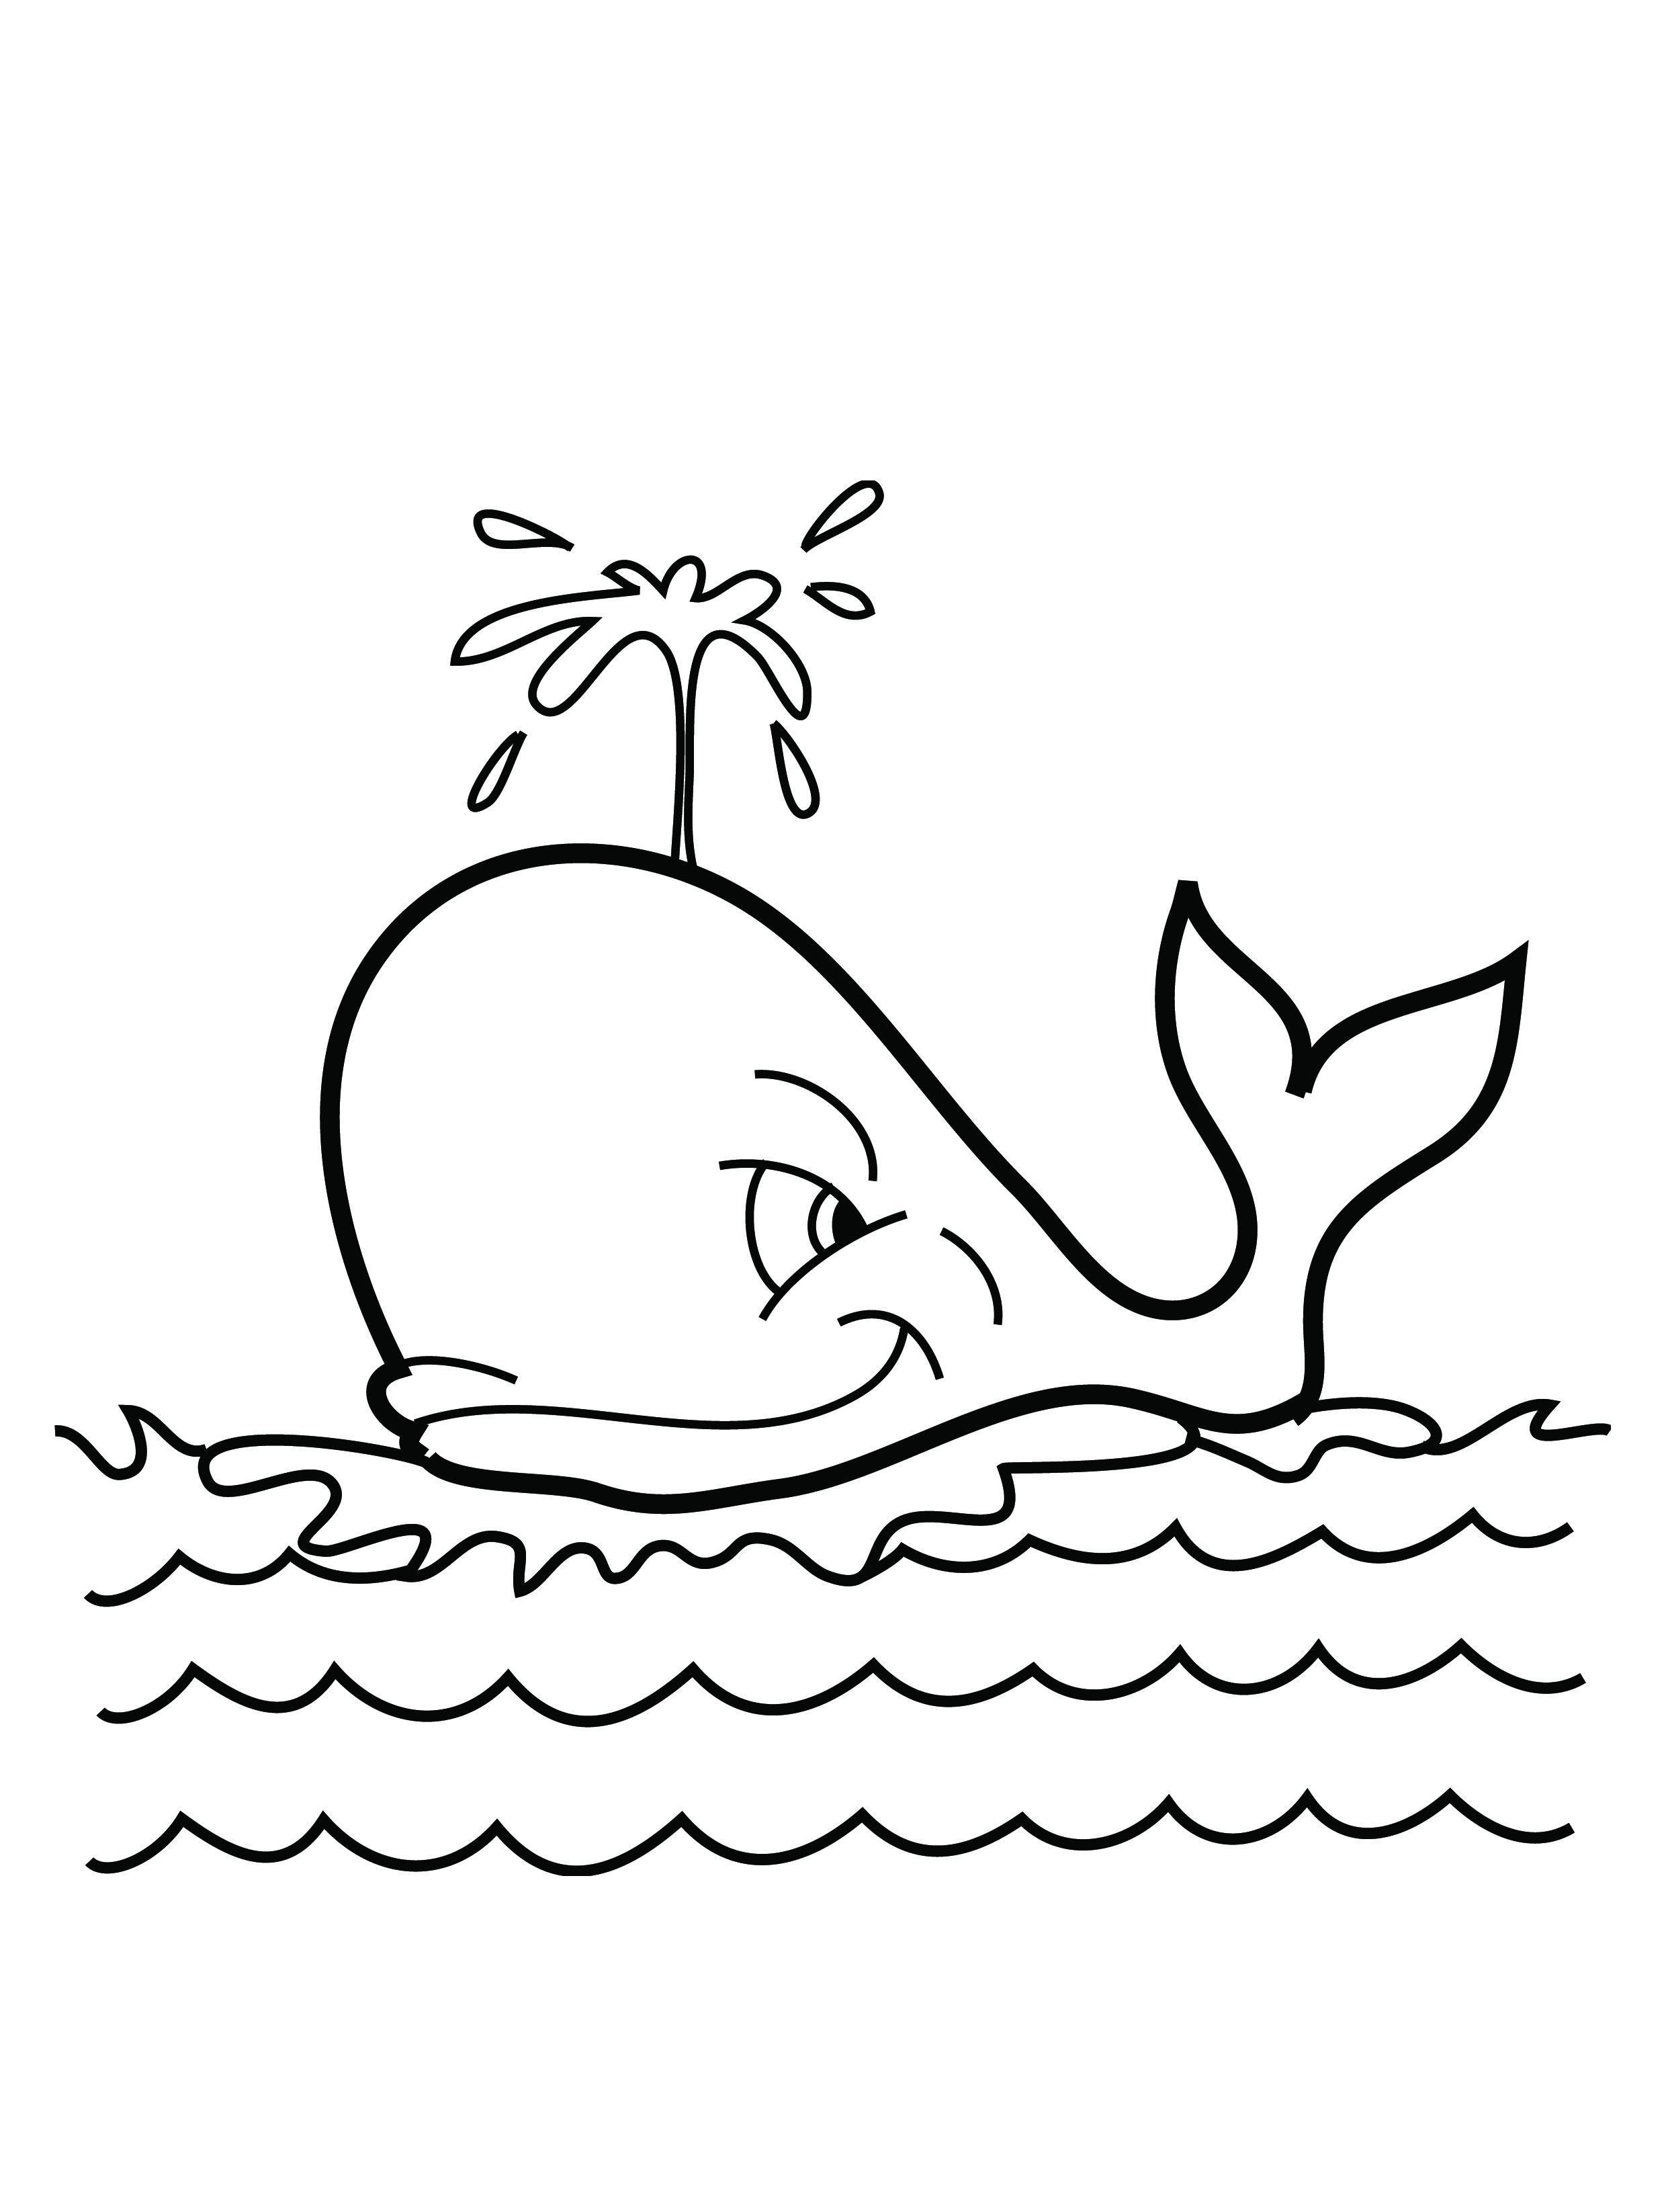 2480x3292 Exclusive Design Whale Coloring Pages For Adults Preschool Beluga